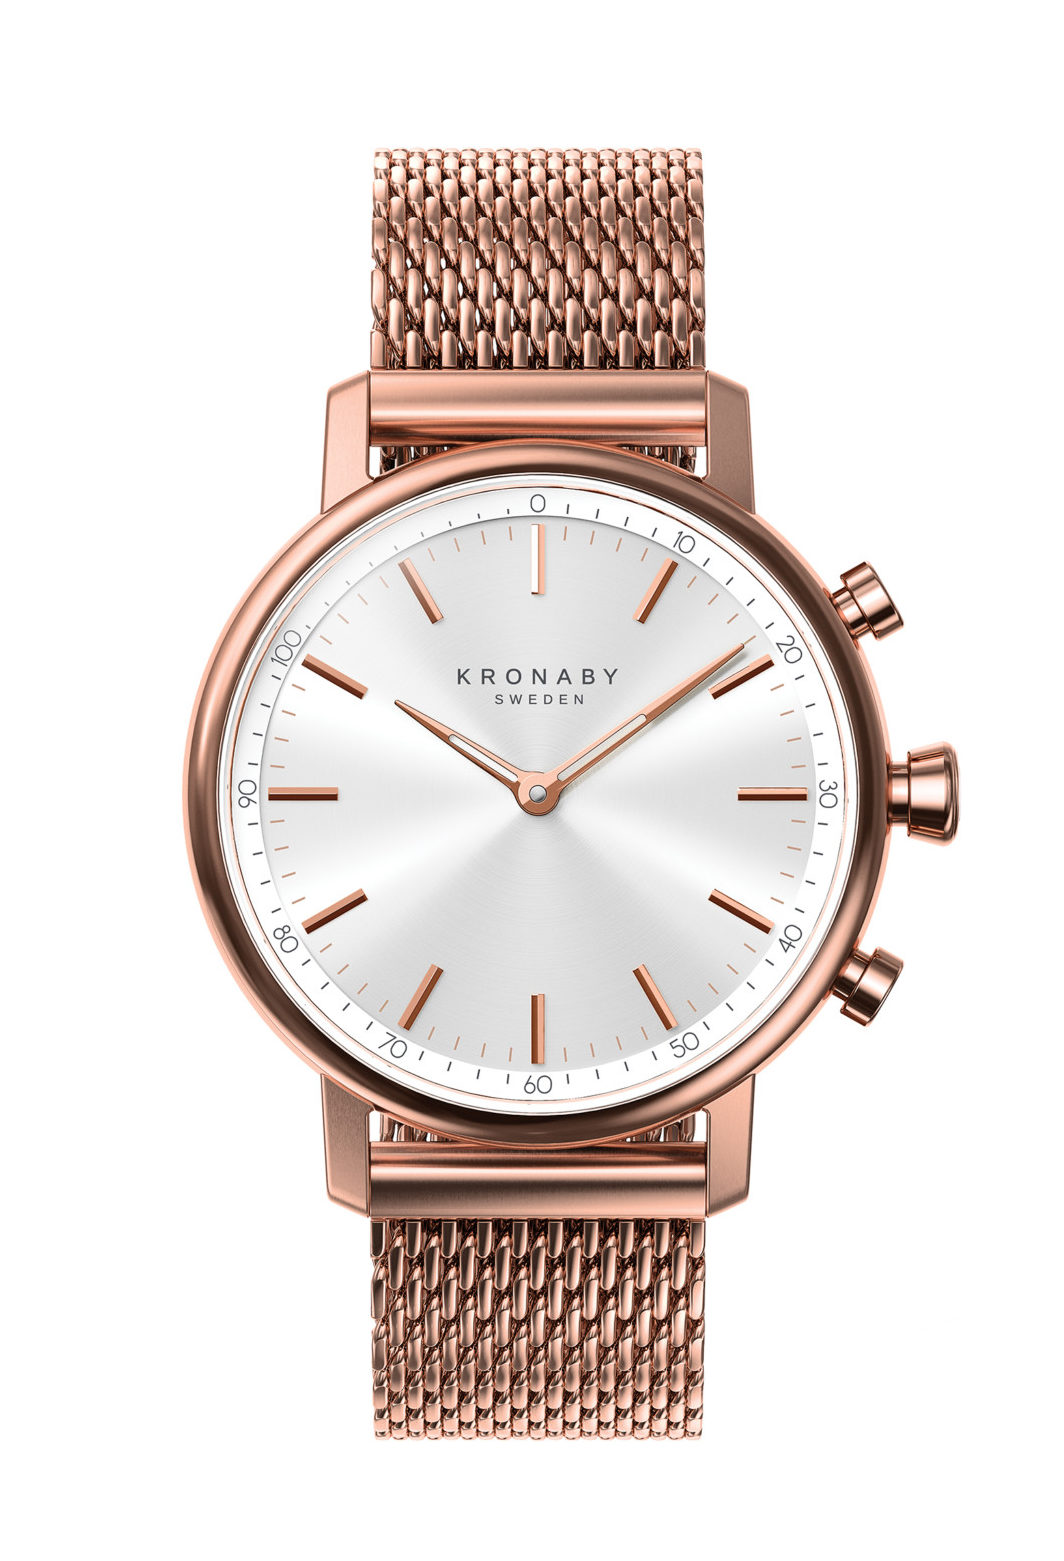 The CARAT family expresses Scandinavian refinement and elegance and is made of carefully selected premium materials and finishes that Kronaby has chosen to match an effortless sense of style. The case size is 38mm and the model comes in six different variants with 18mm bracelets in stainless steel, solid links/mesh or leather.